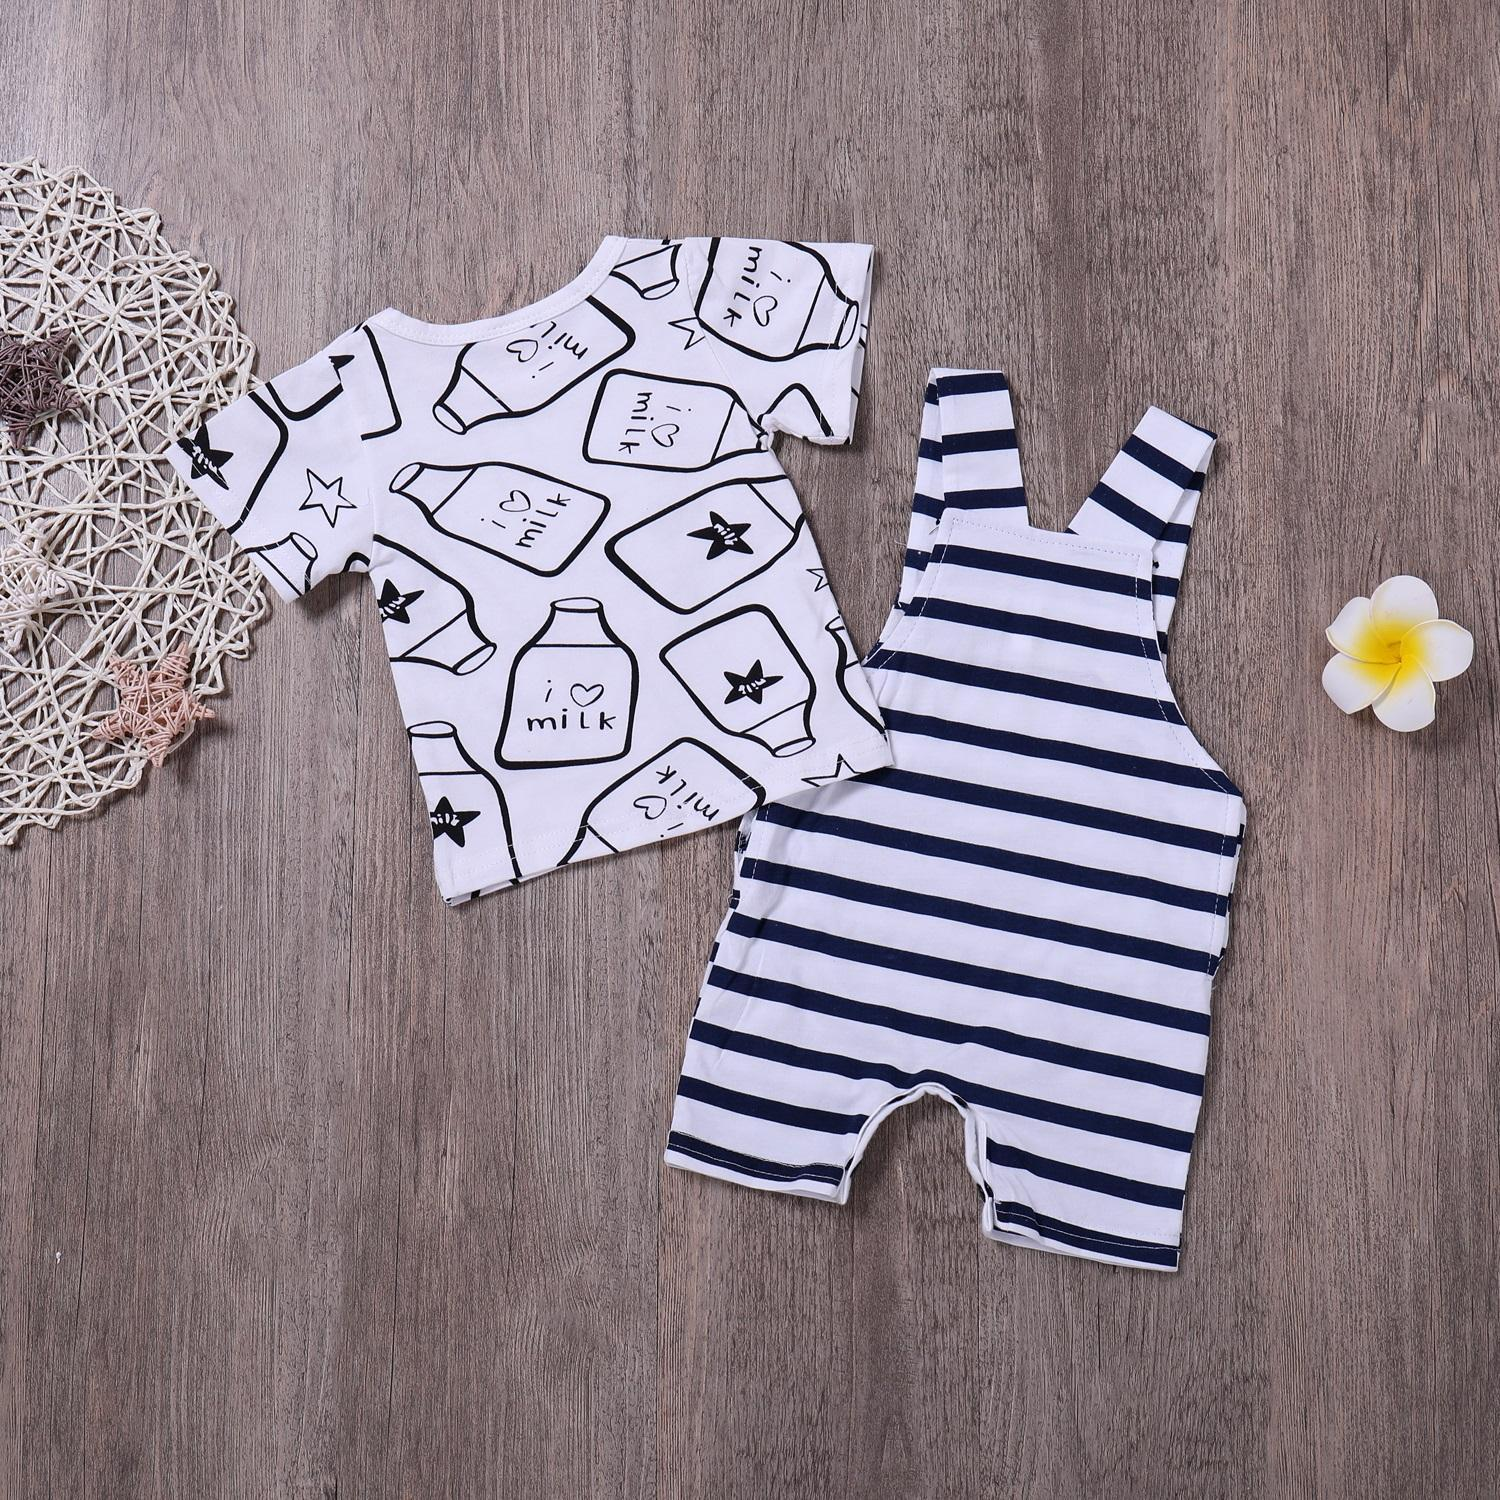 1 set Infant Clothing Boys Baby T-shirt and Dungaree Shorts Newborn Formal Clothes for 3-24 Months Boy Babies Free Shipping 2pcs set baby clothes set boy